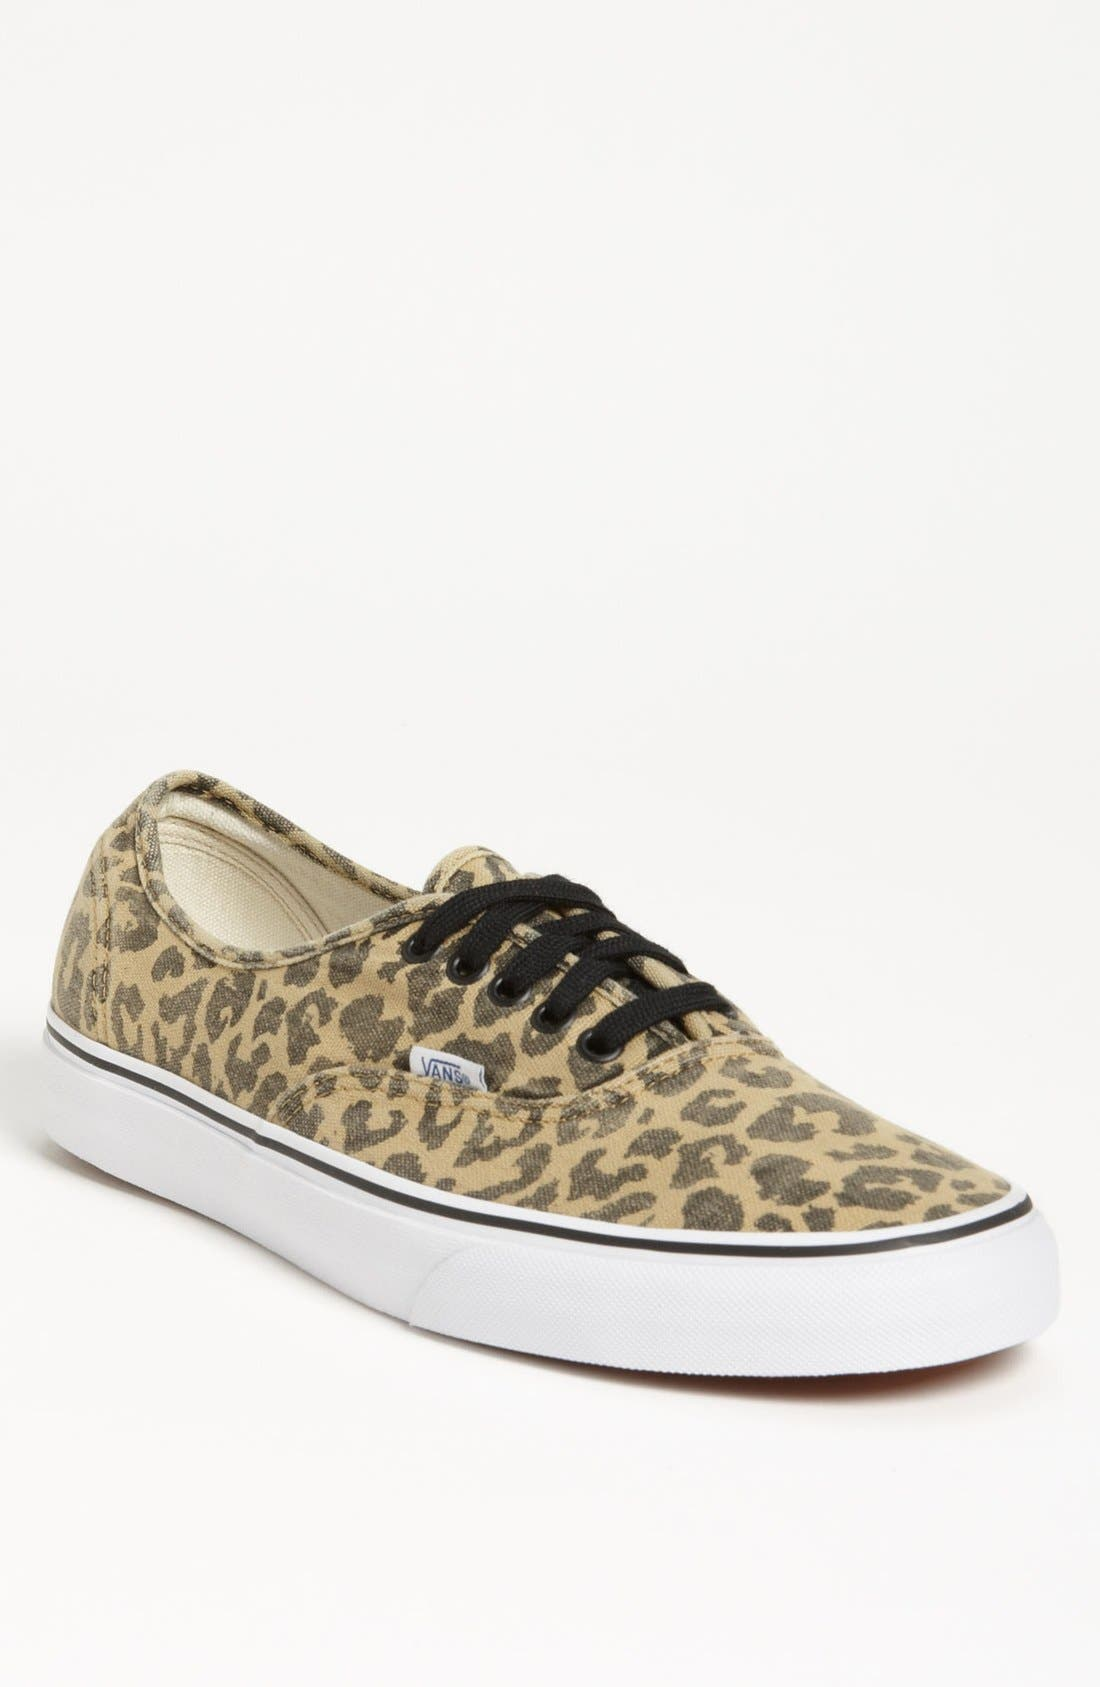 Alternate Image 1 Selected - Vans 'Van Doren - Authentic' Sneaker (Men)